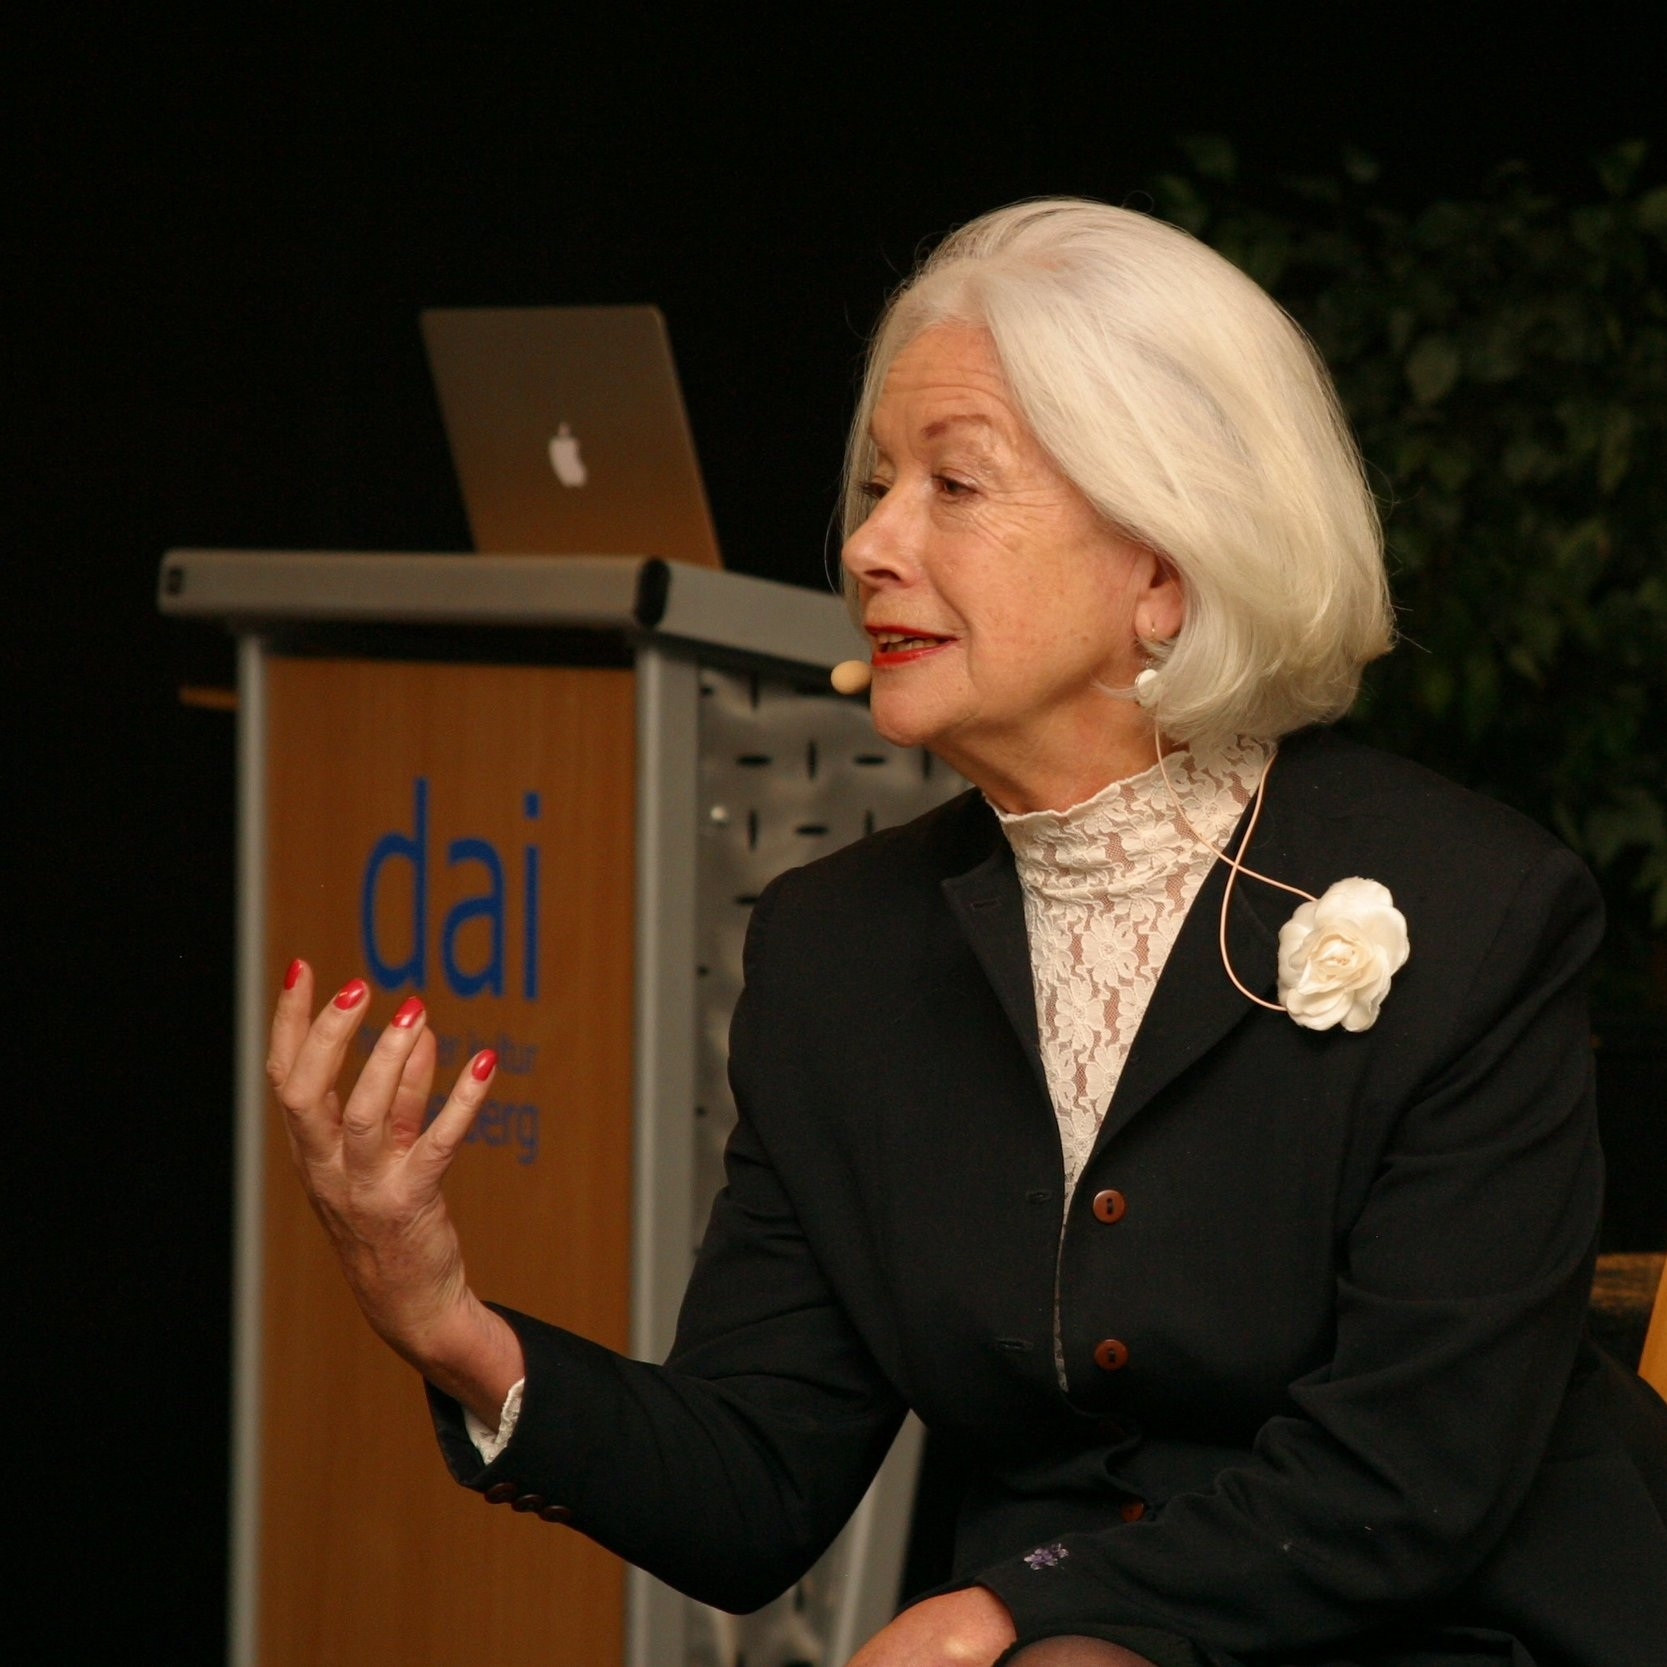 Dr SCILLA ELWORTHY - Three times Nobel Peace Prize nominee